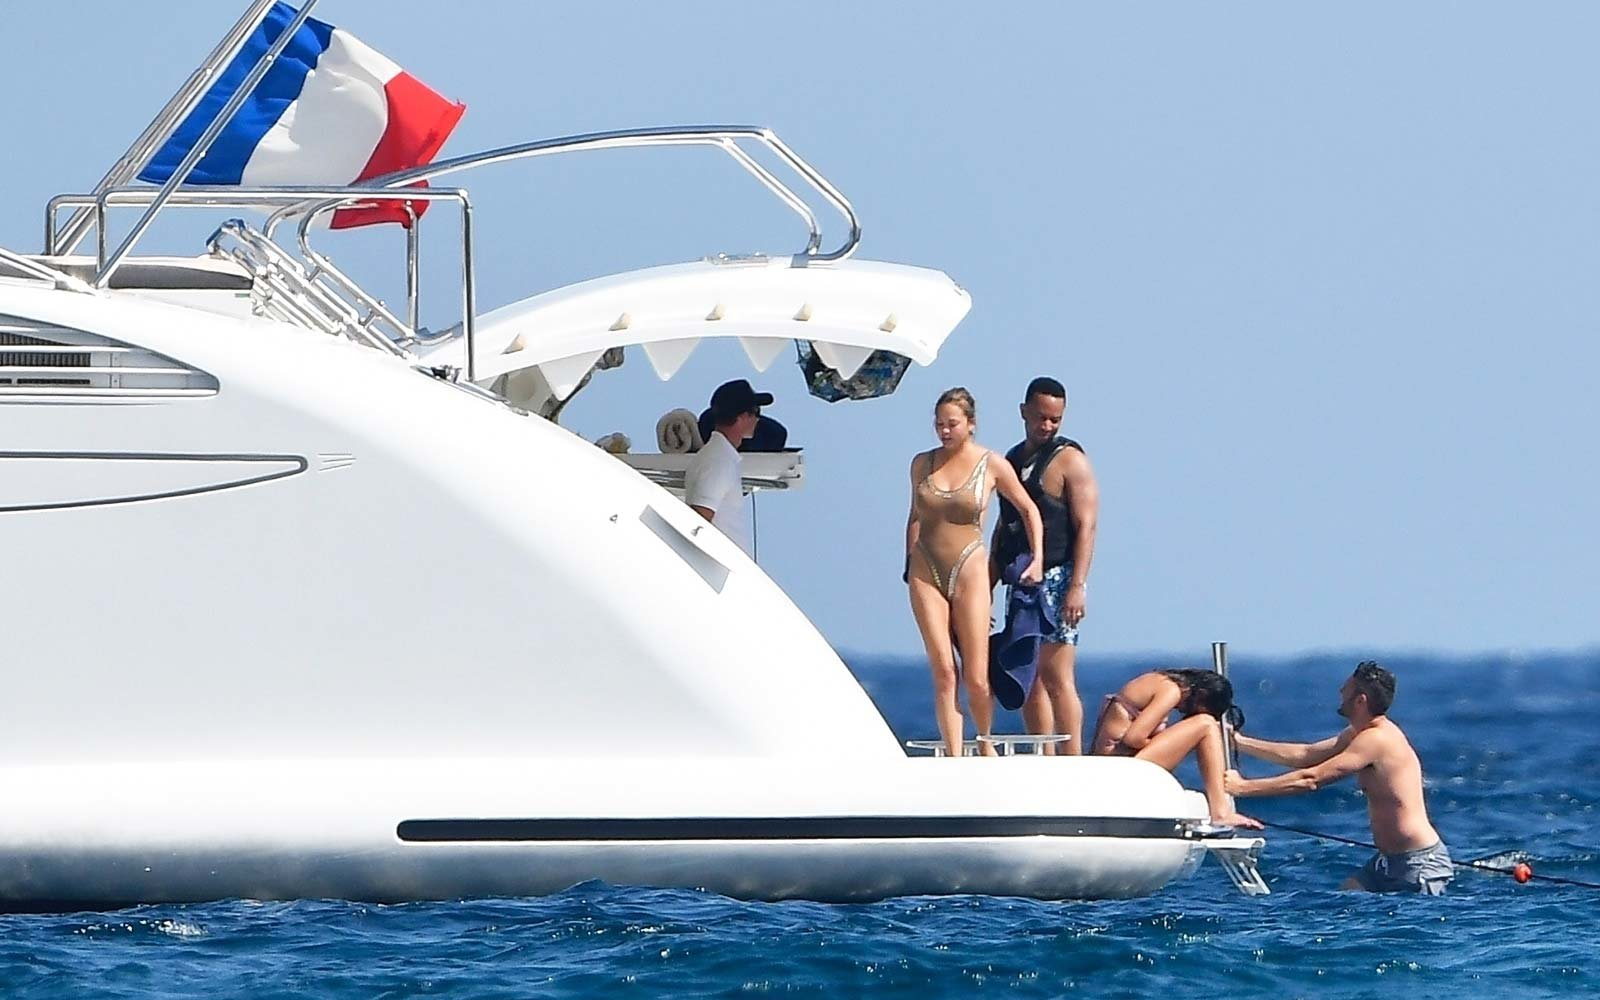 Model Chrissy Teigen and her hubby John Legend were seen enjoying a day in the sun on a yacht in Corsica, France